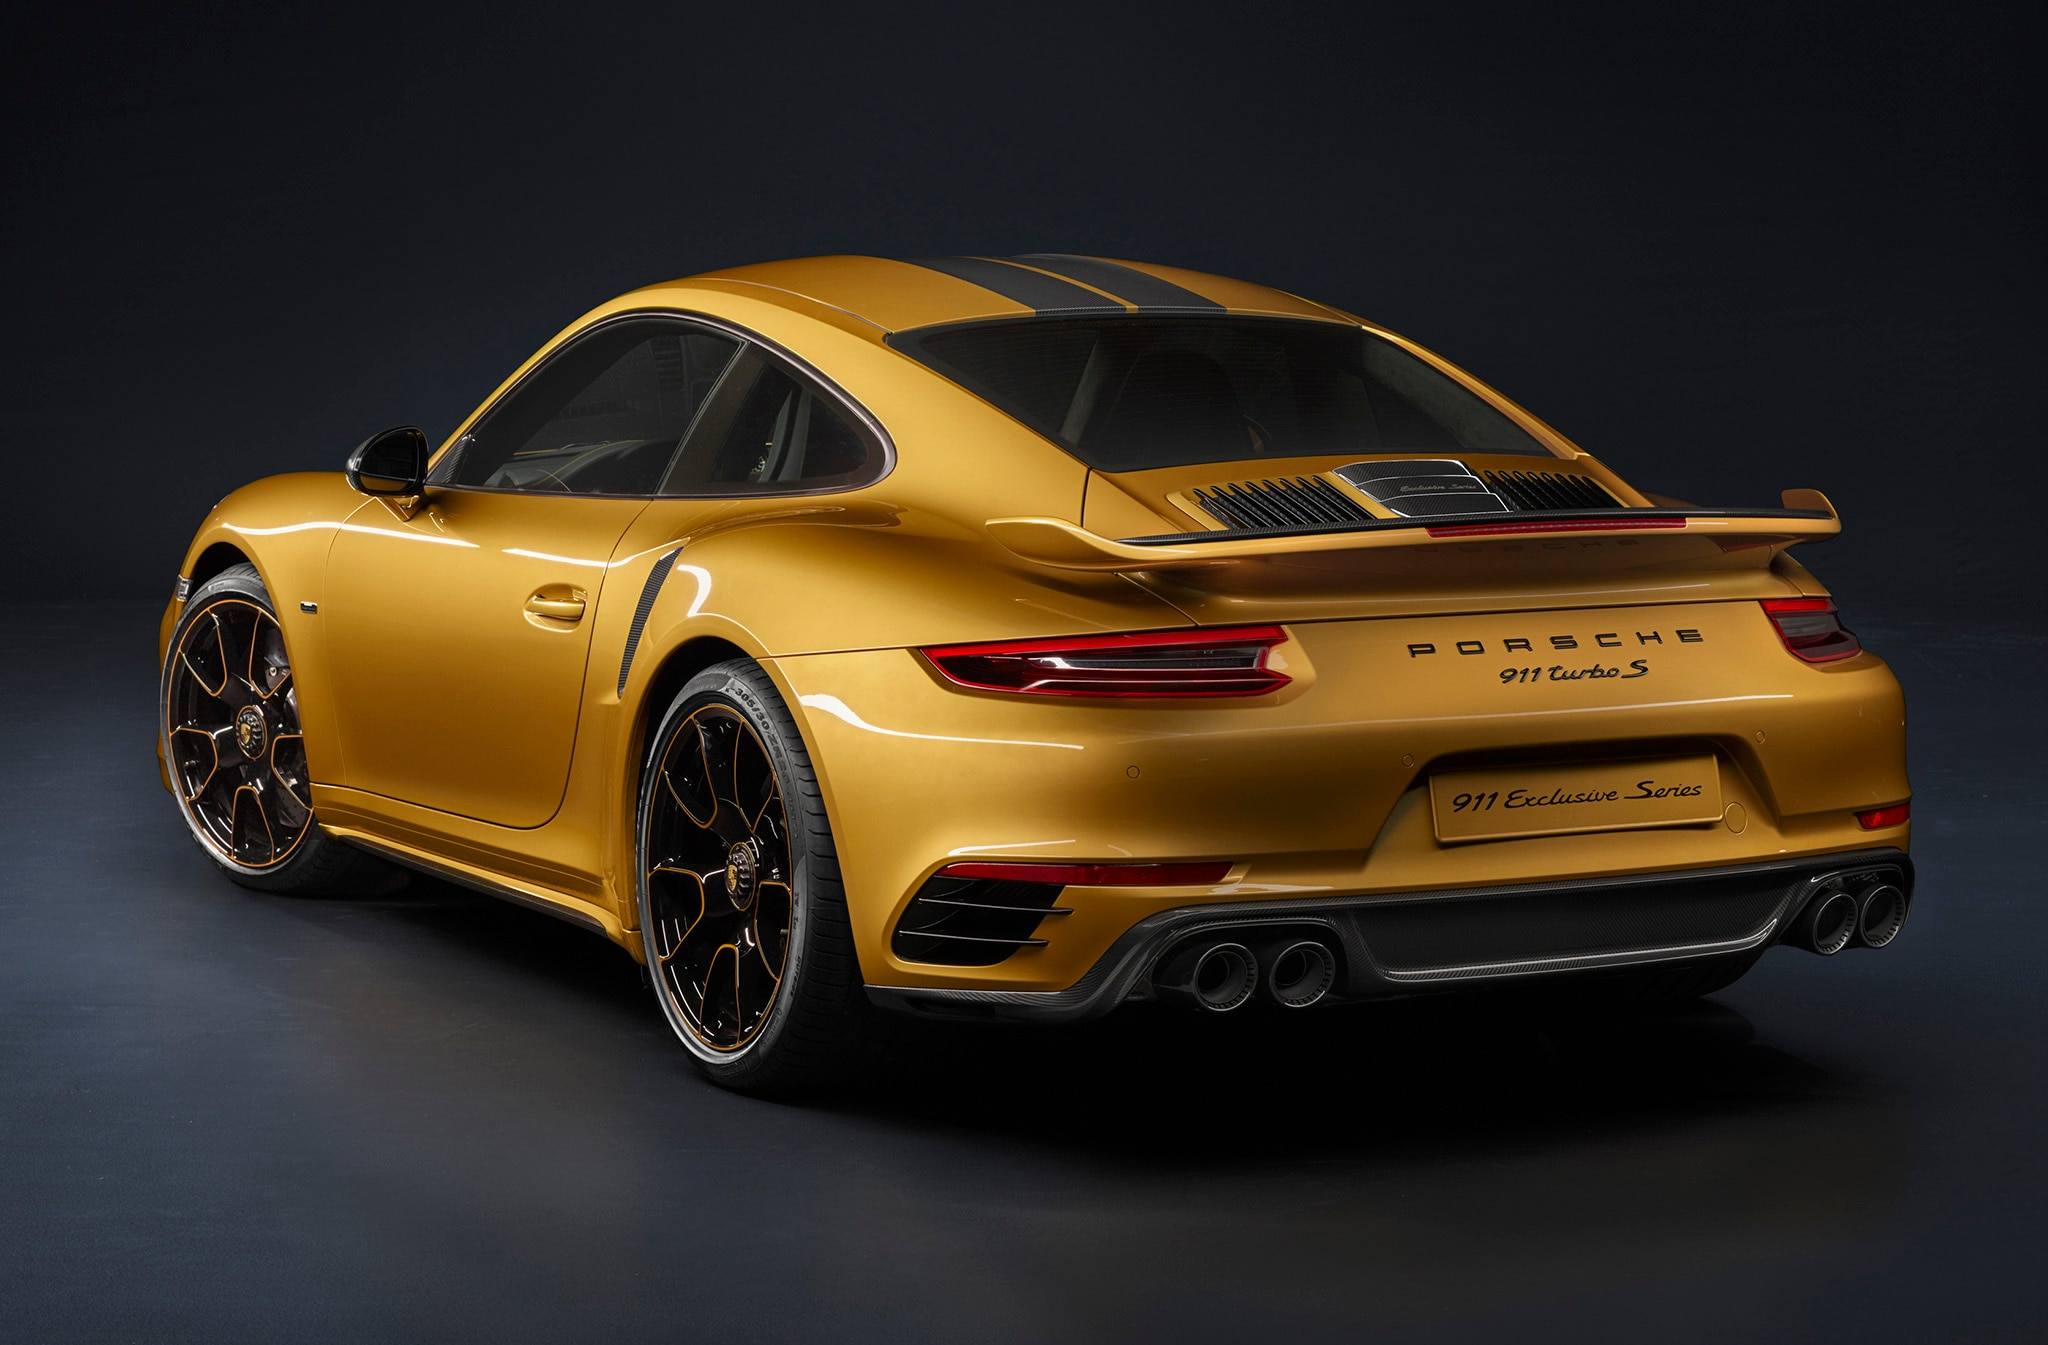 Porsche sets price for 911 Turbo S Exclusive